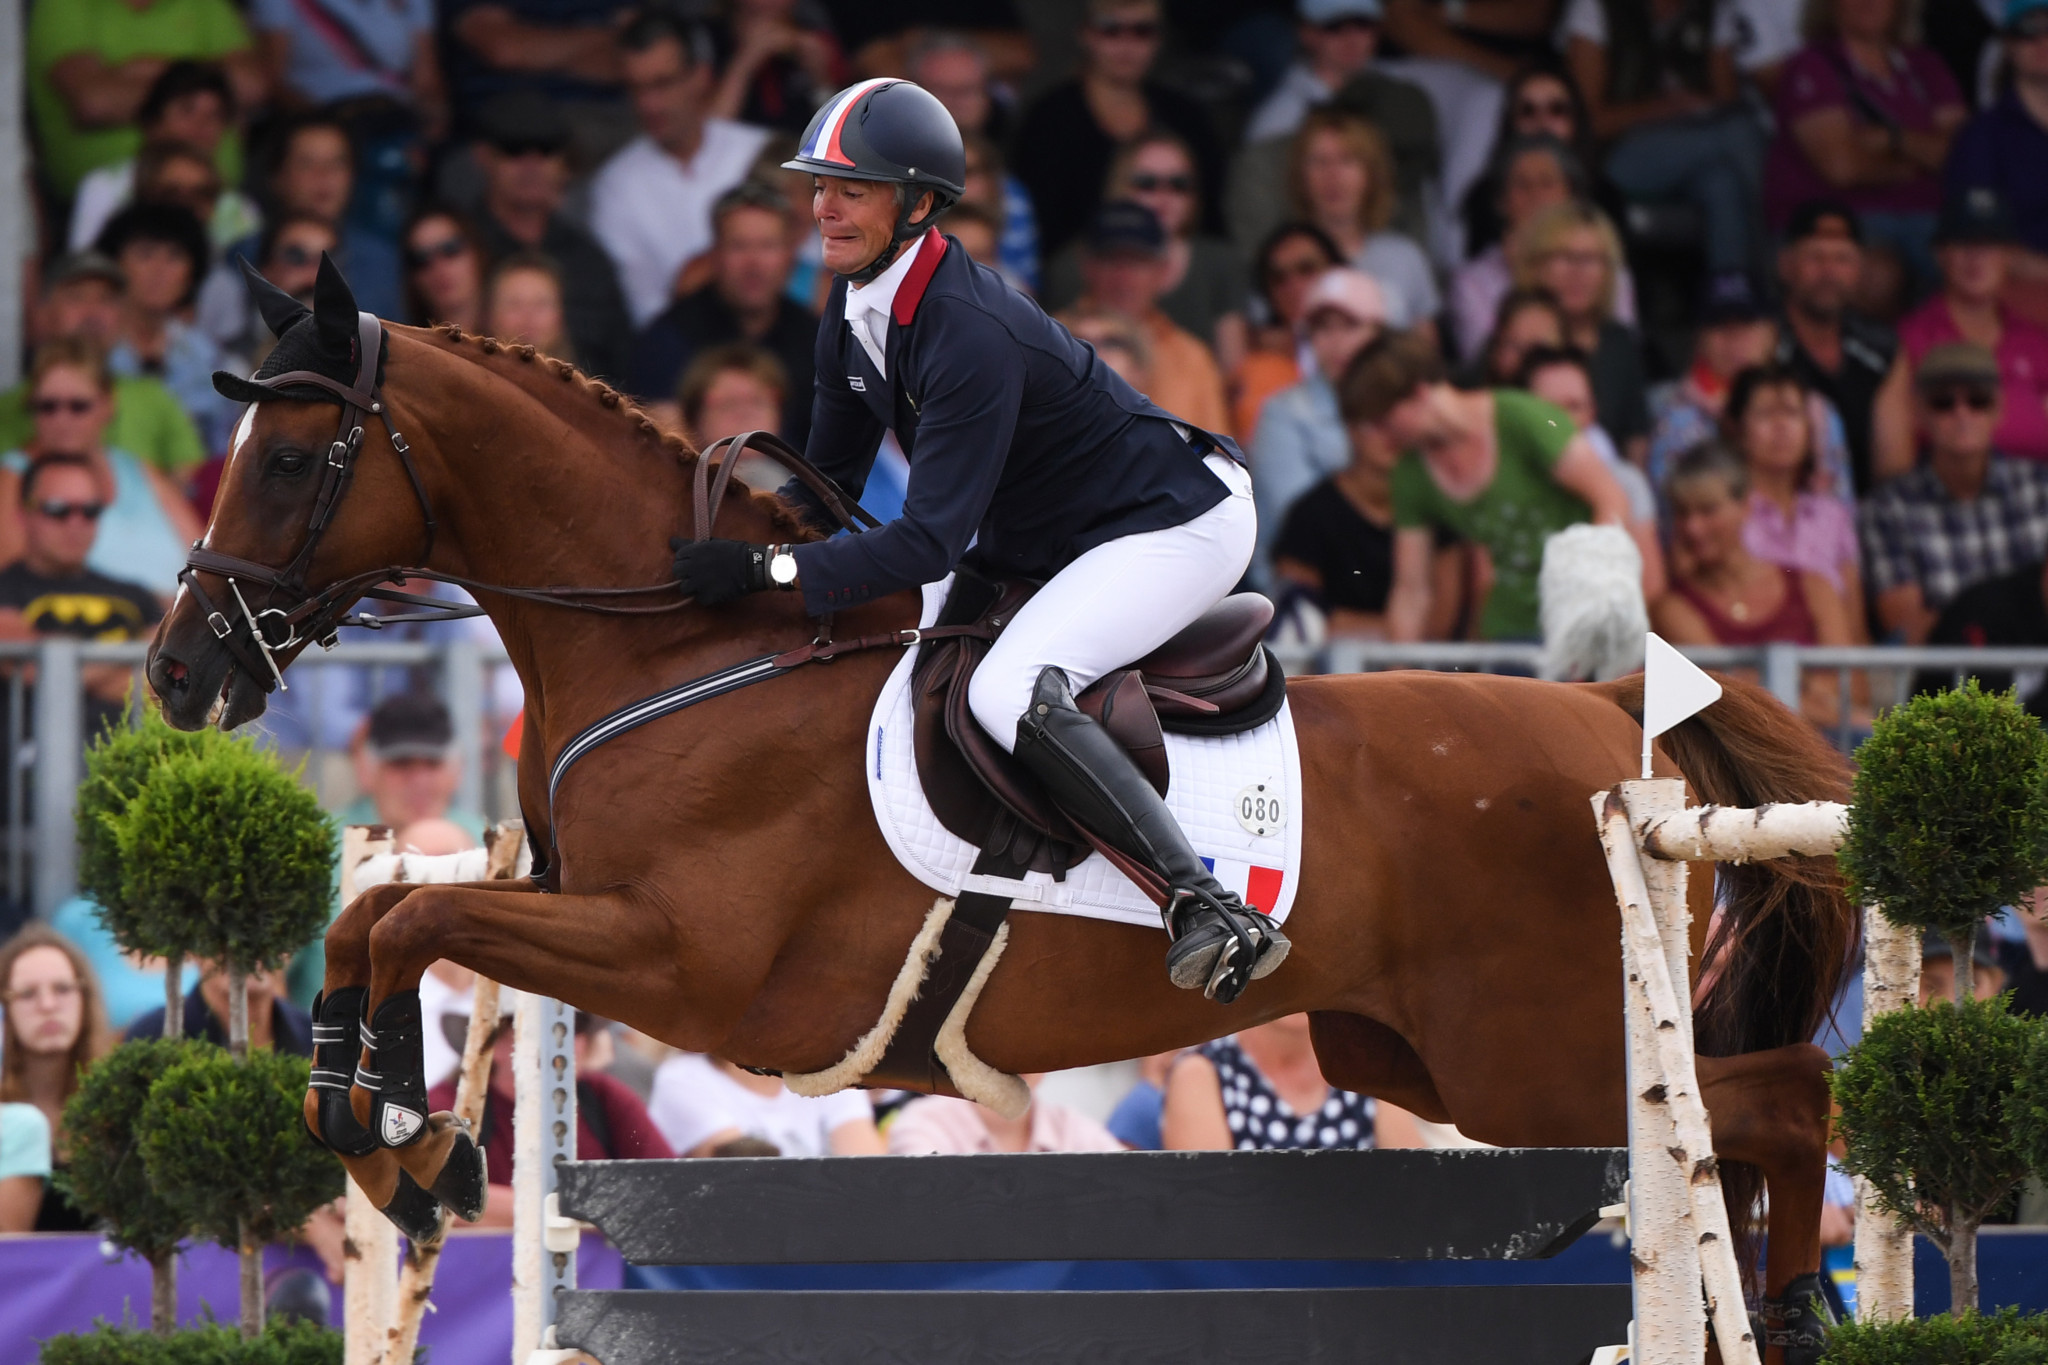 Waregem to host penultimate event of FEI Nations Cup Eventing series